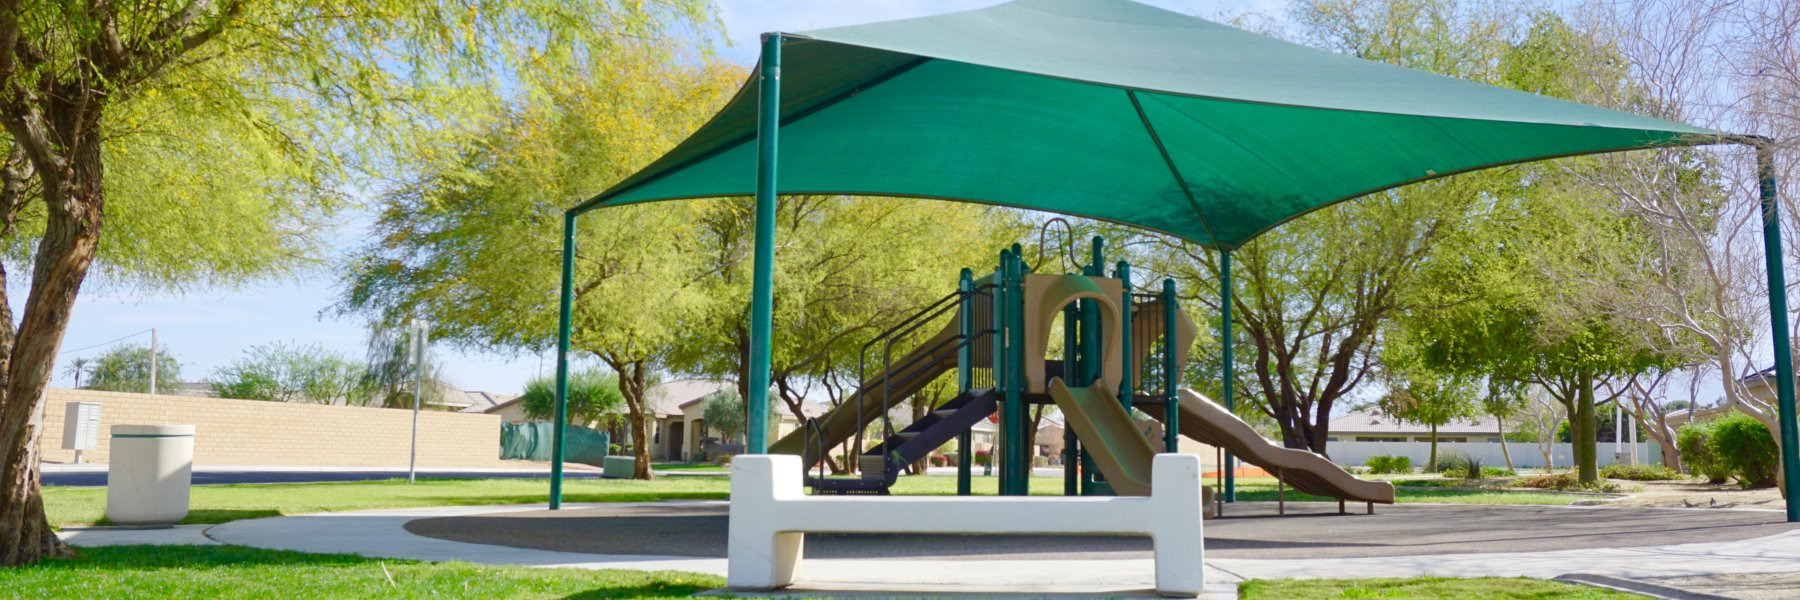 Whittier Ranch is a community of homes in Indio California